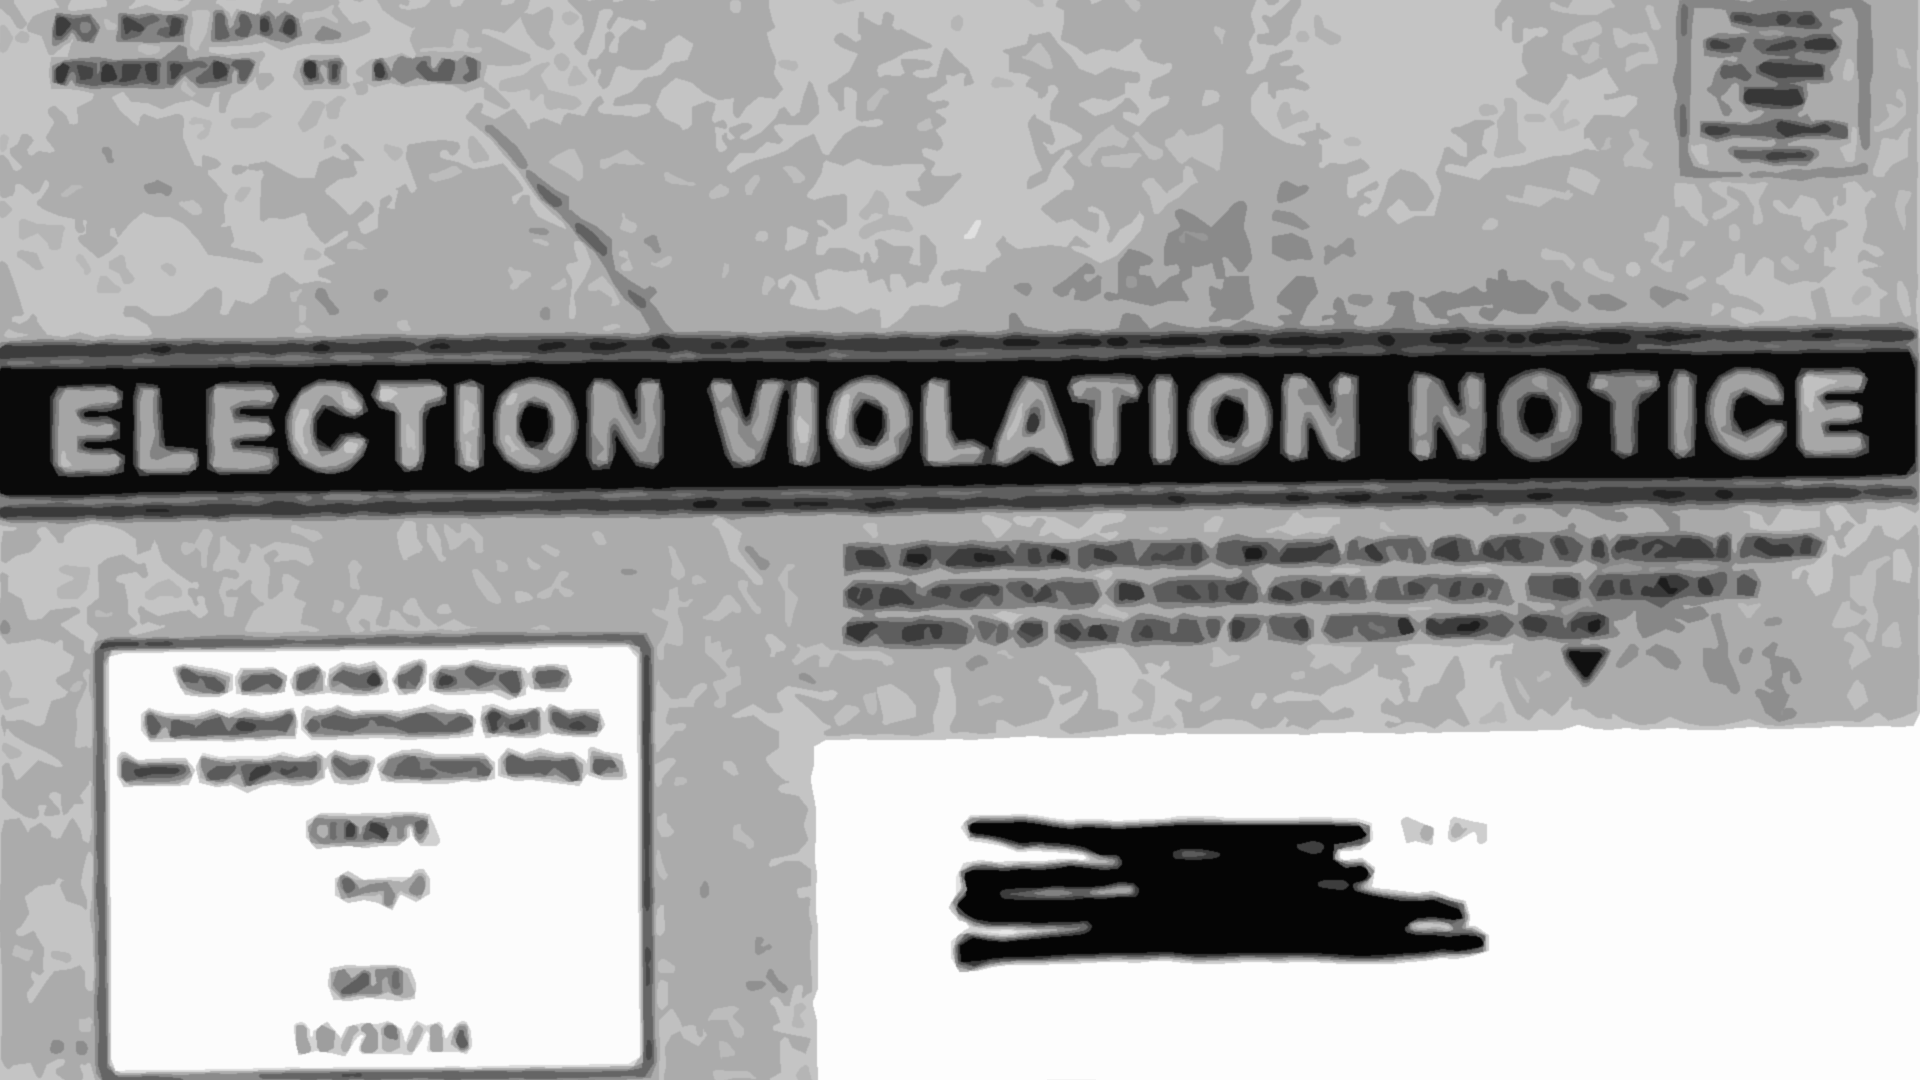 election violation notice fake news